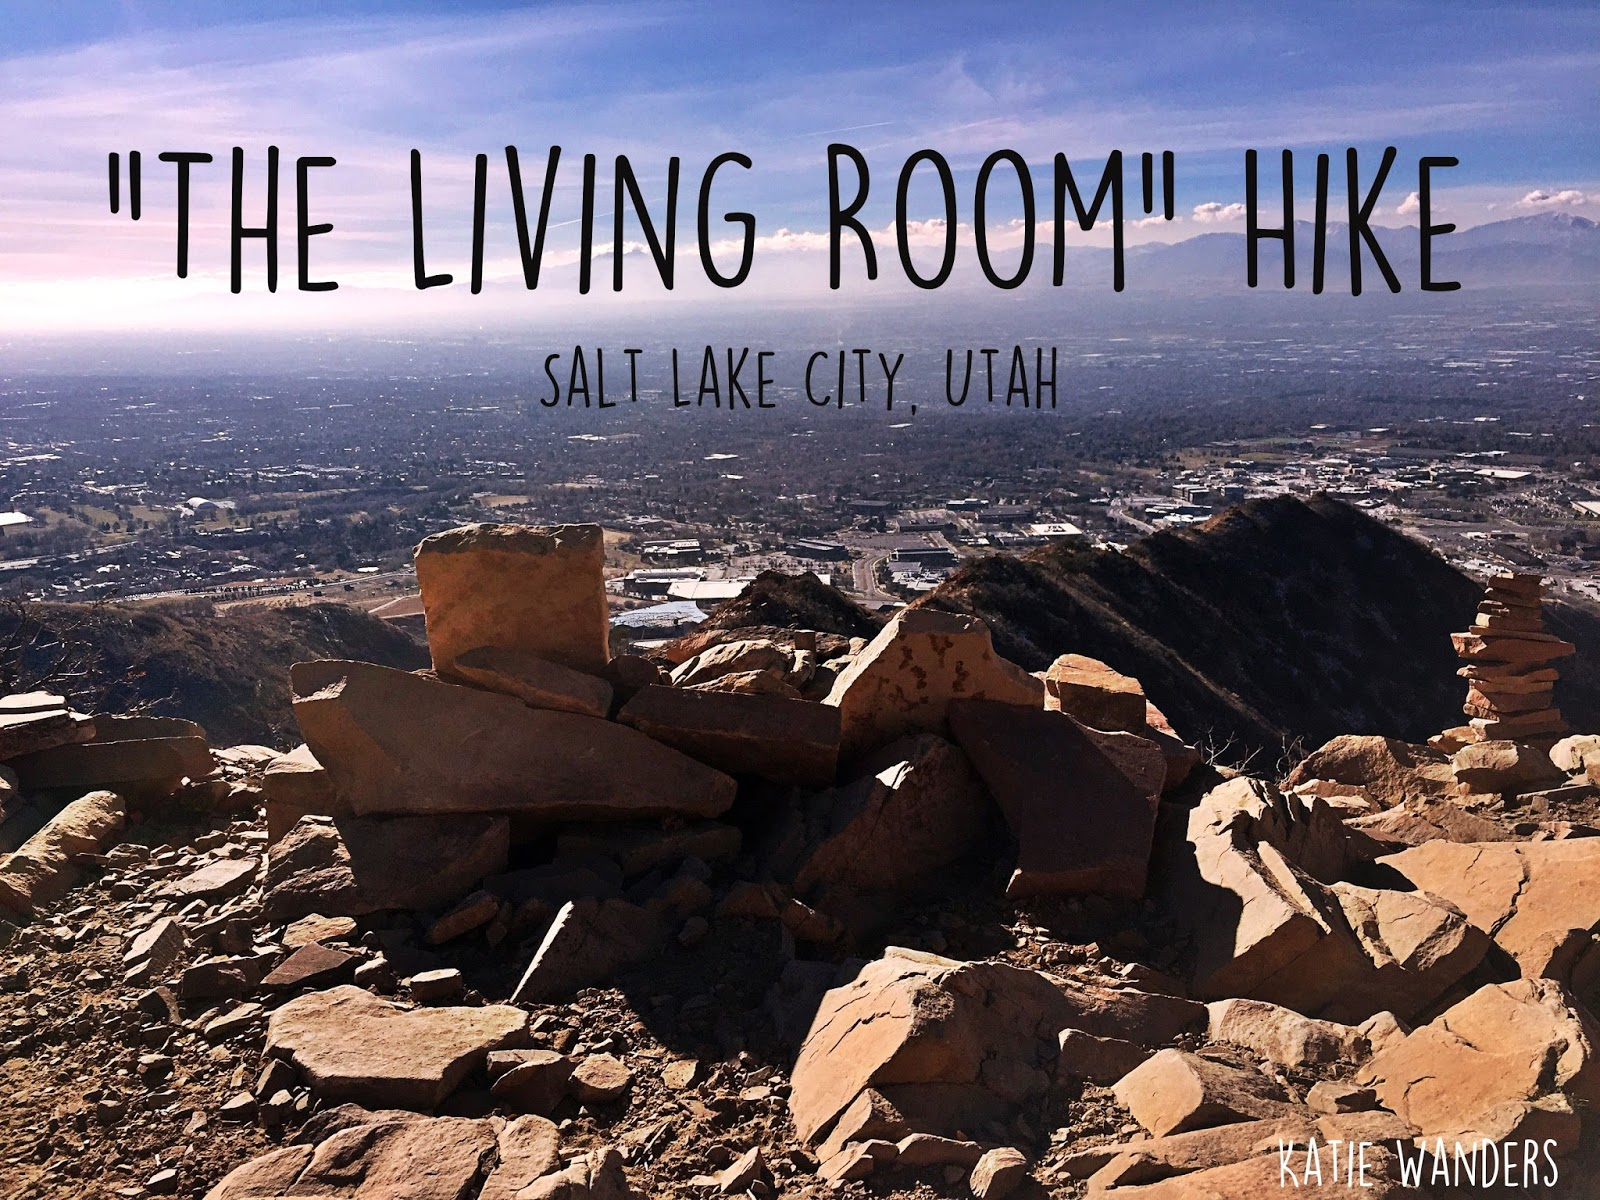 Katie wanders living room hike salt lake city for Living room hike